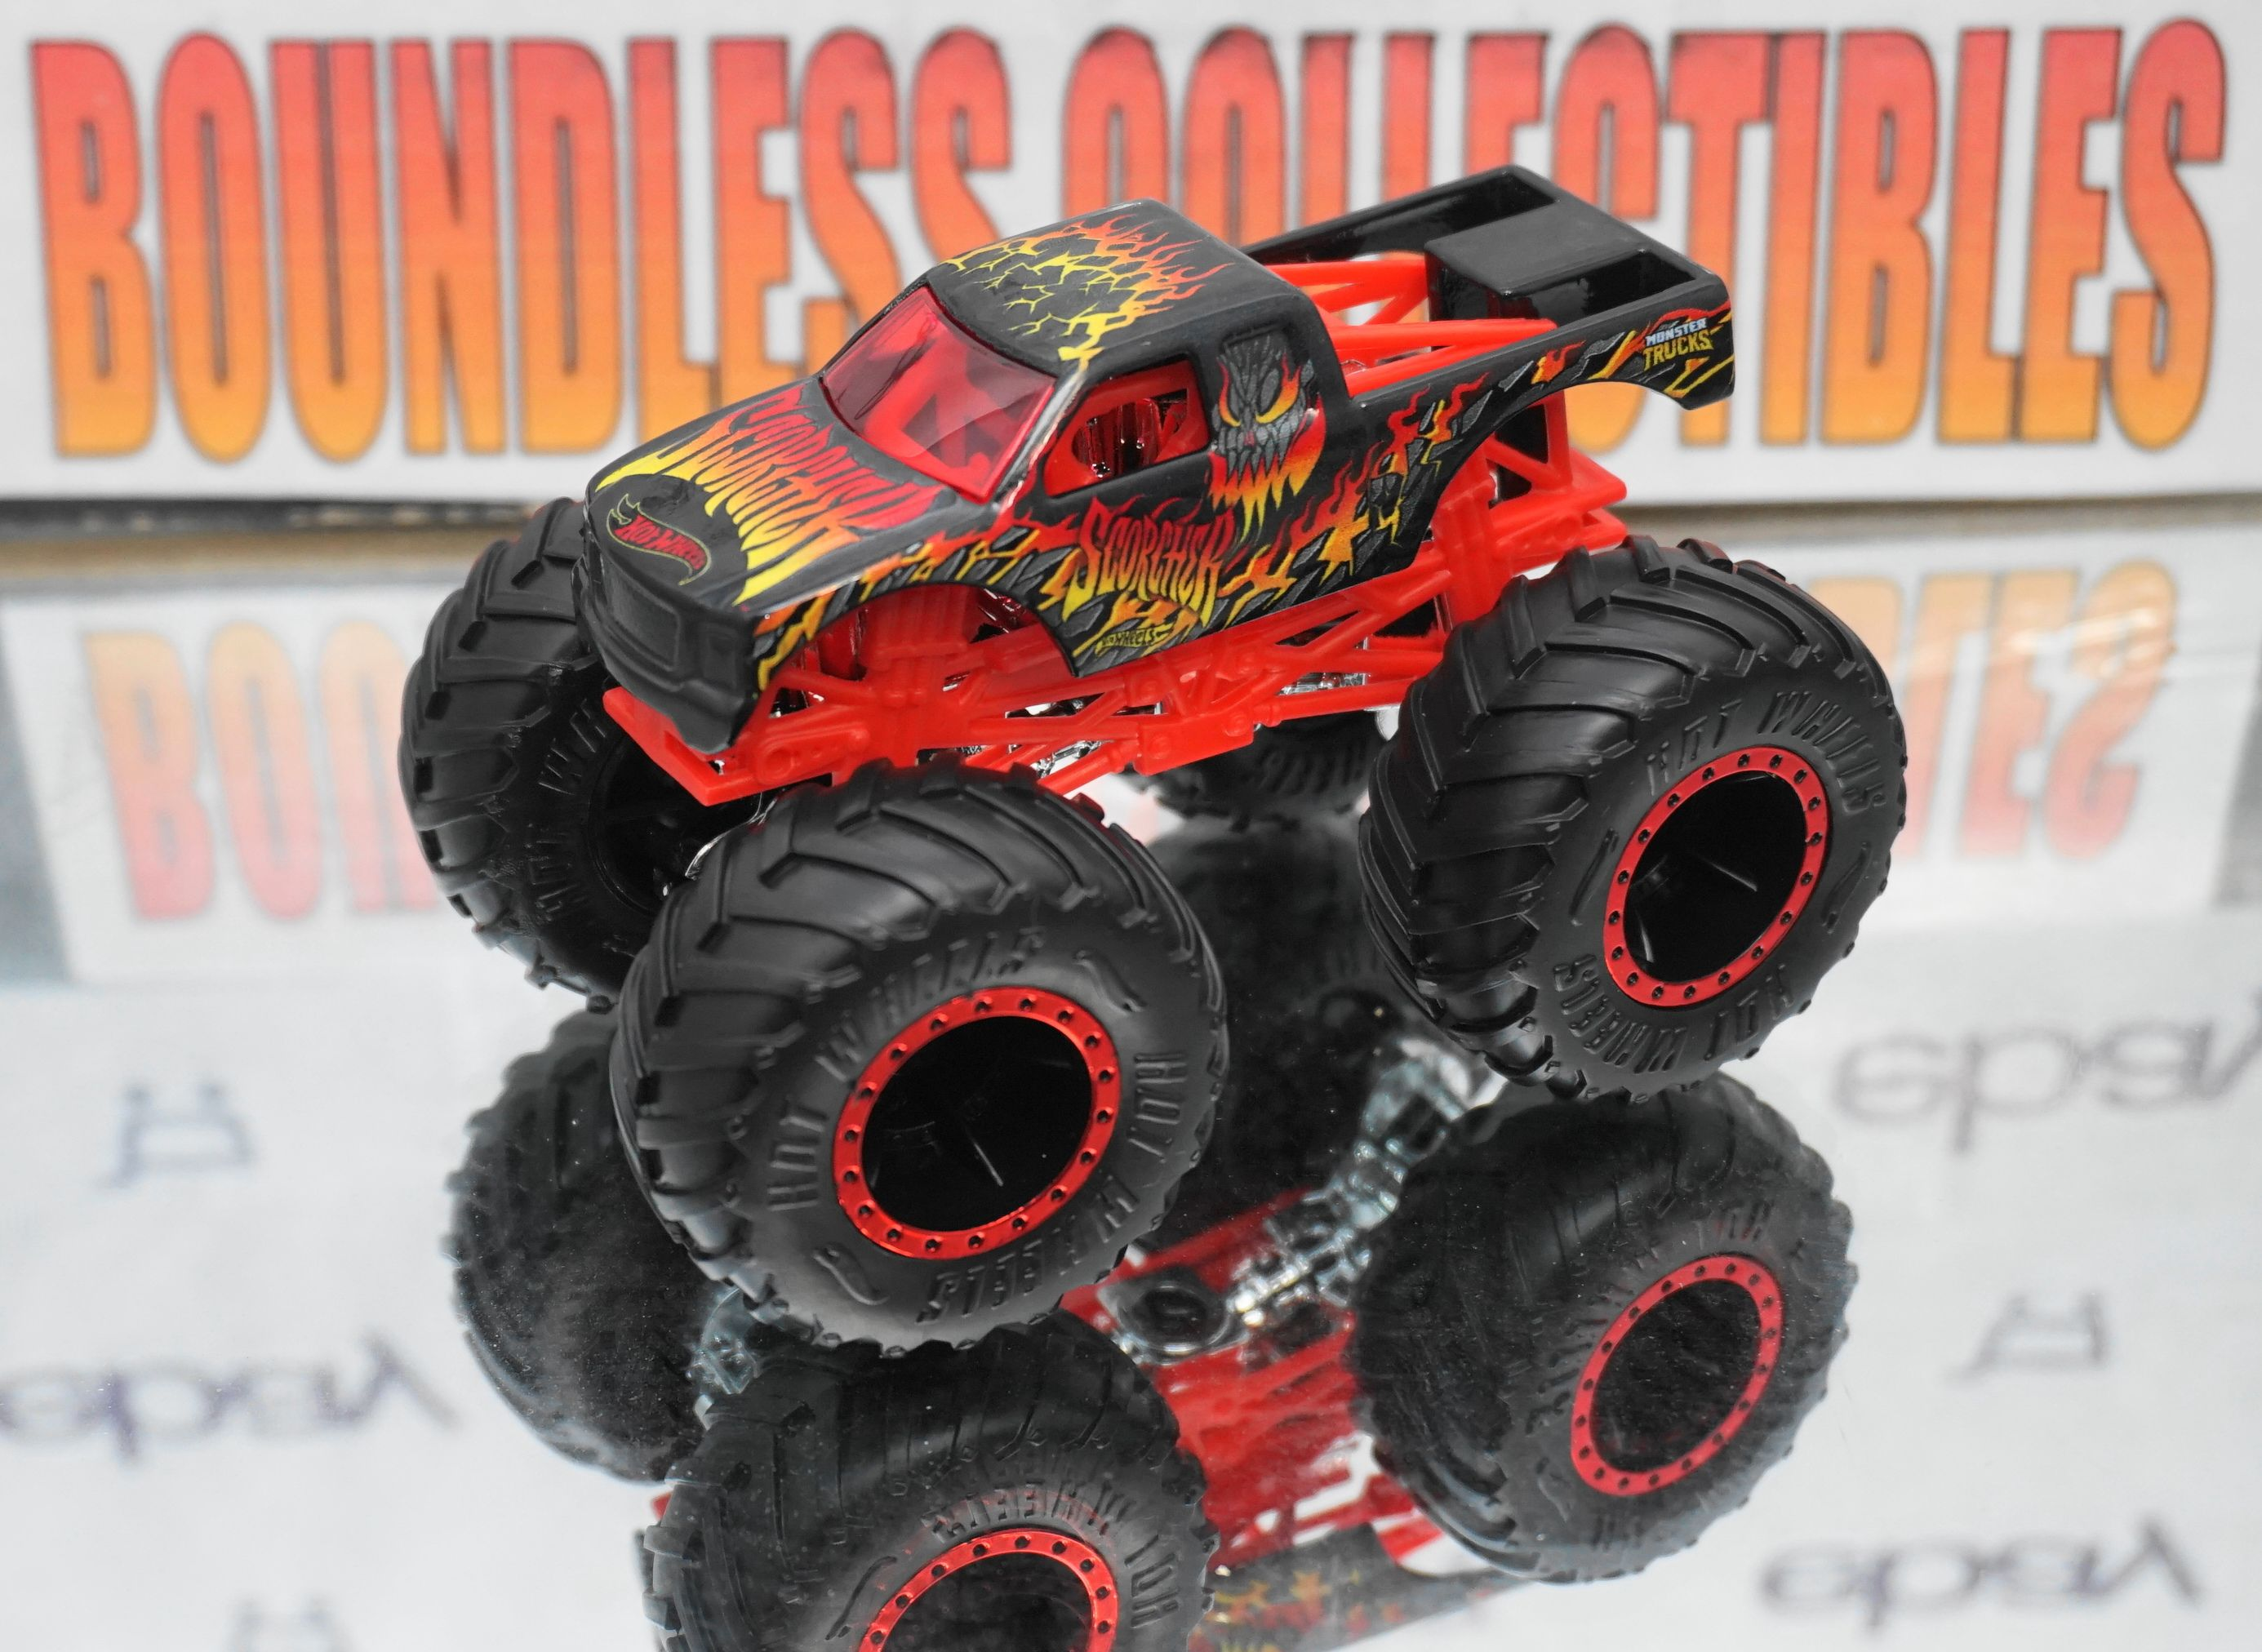 2018 Hot Wheels Monster Truck Scorcher Check Out All Of Our Die Cast Boundlesscollectibles Com Monster Trucks Hot Wheels Hot Wheels Monster Jam